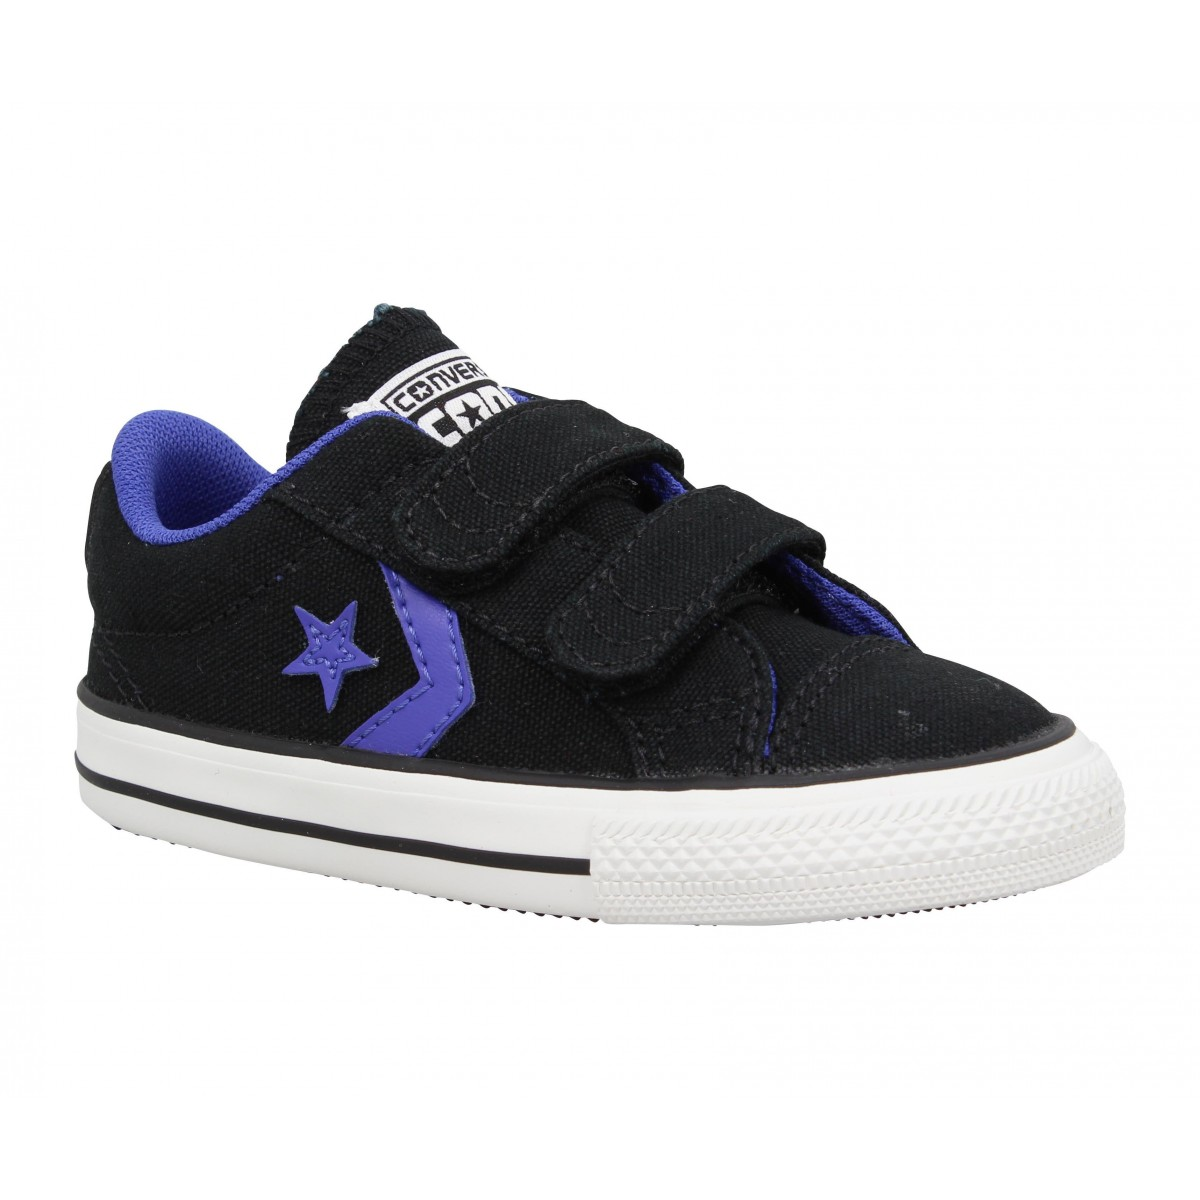 Baskets CONVERSE Star Player toile Enfant Noir + Violet